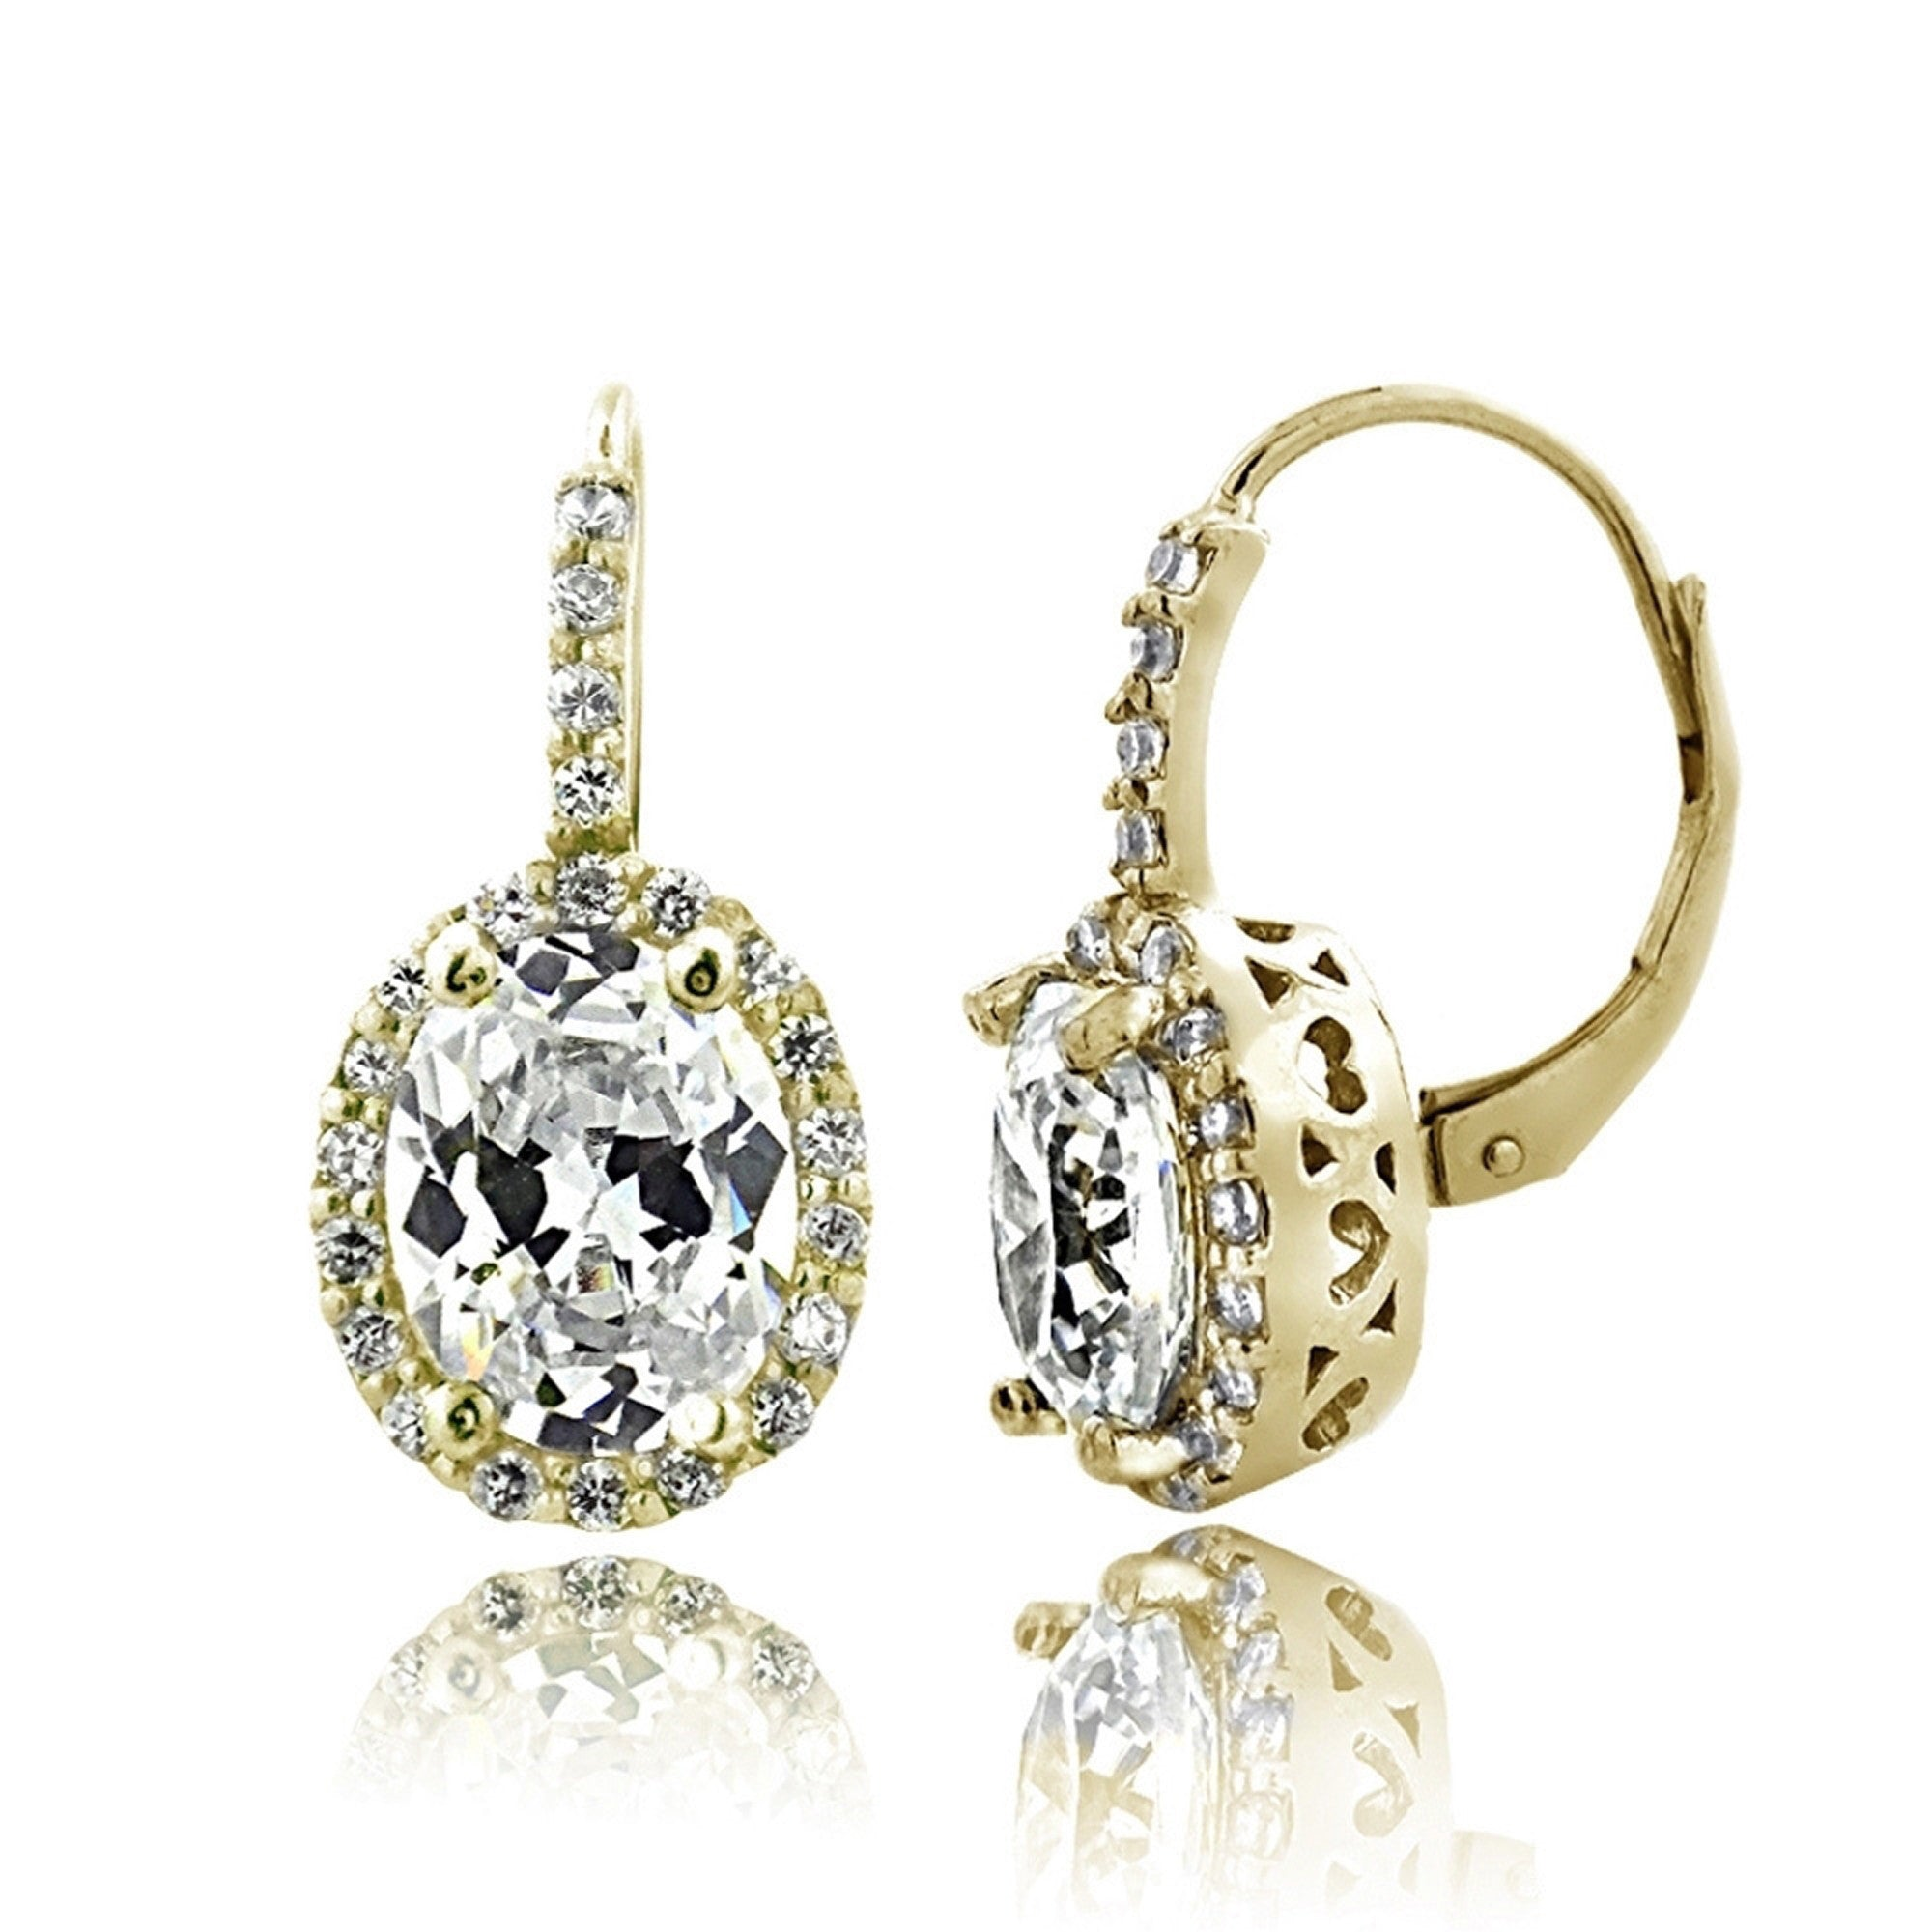 Oval Cubic Zirconia Halo Leverback Earrings - Gold Tone